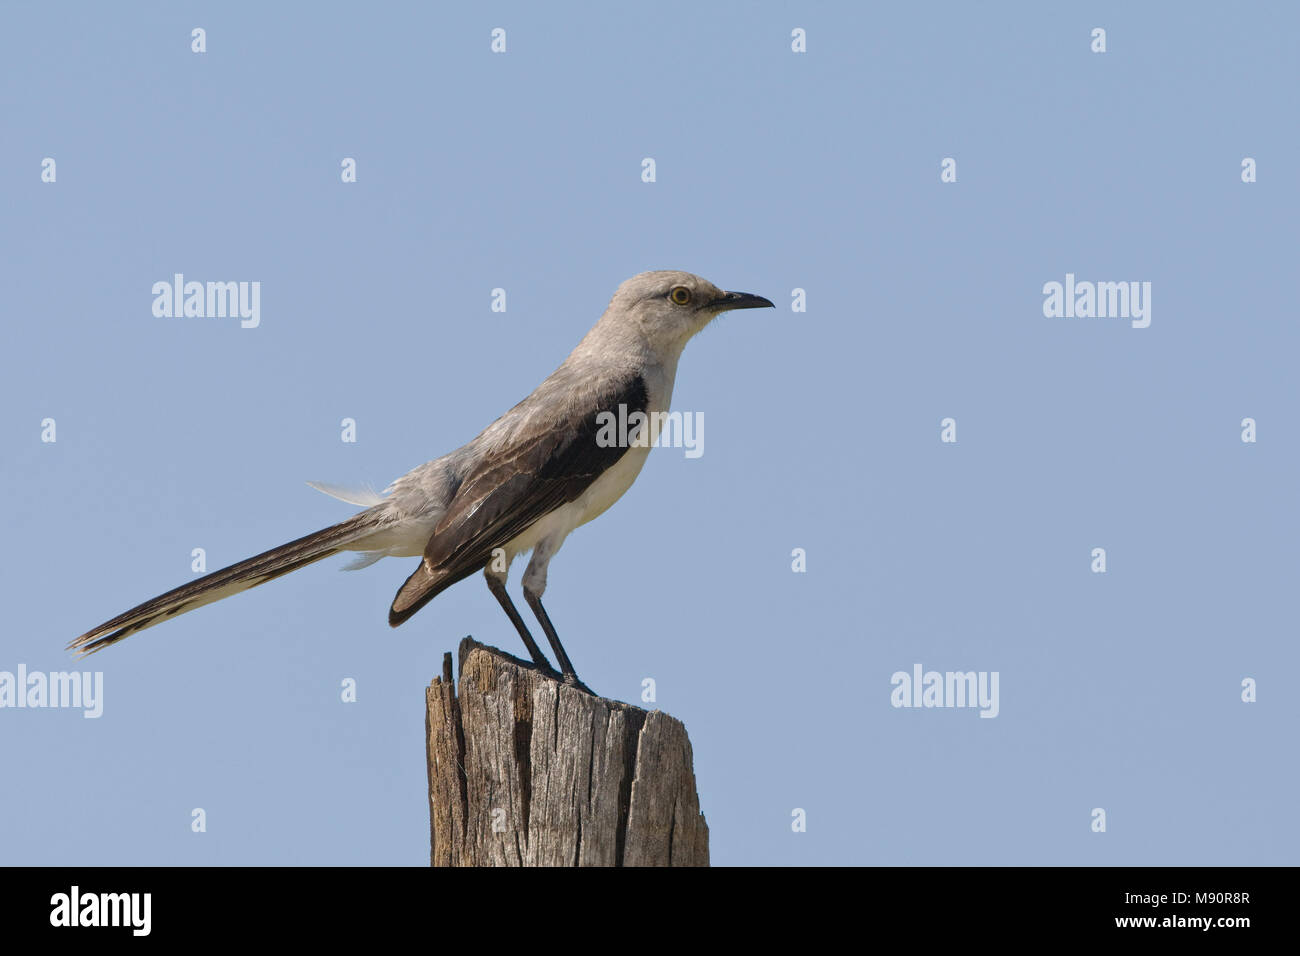 Tropische Spotlijster staand op paal Mexico, Tropical Mockingbird perched on pole Mexico - Stock Image